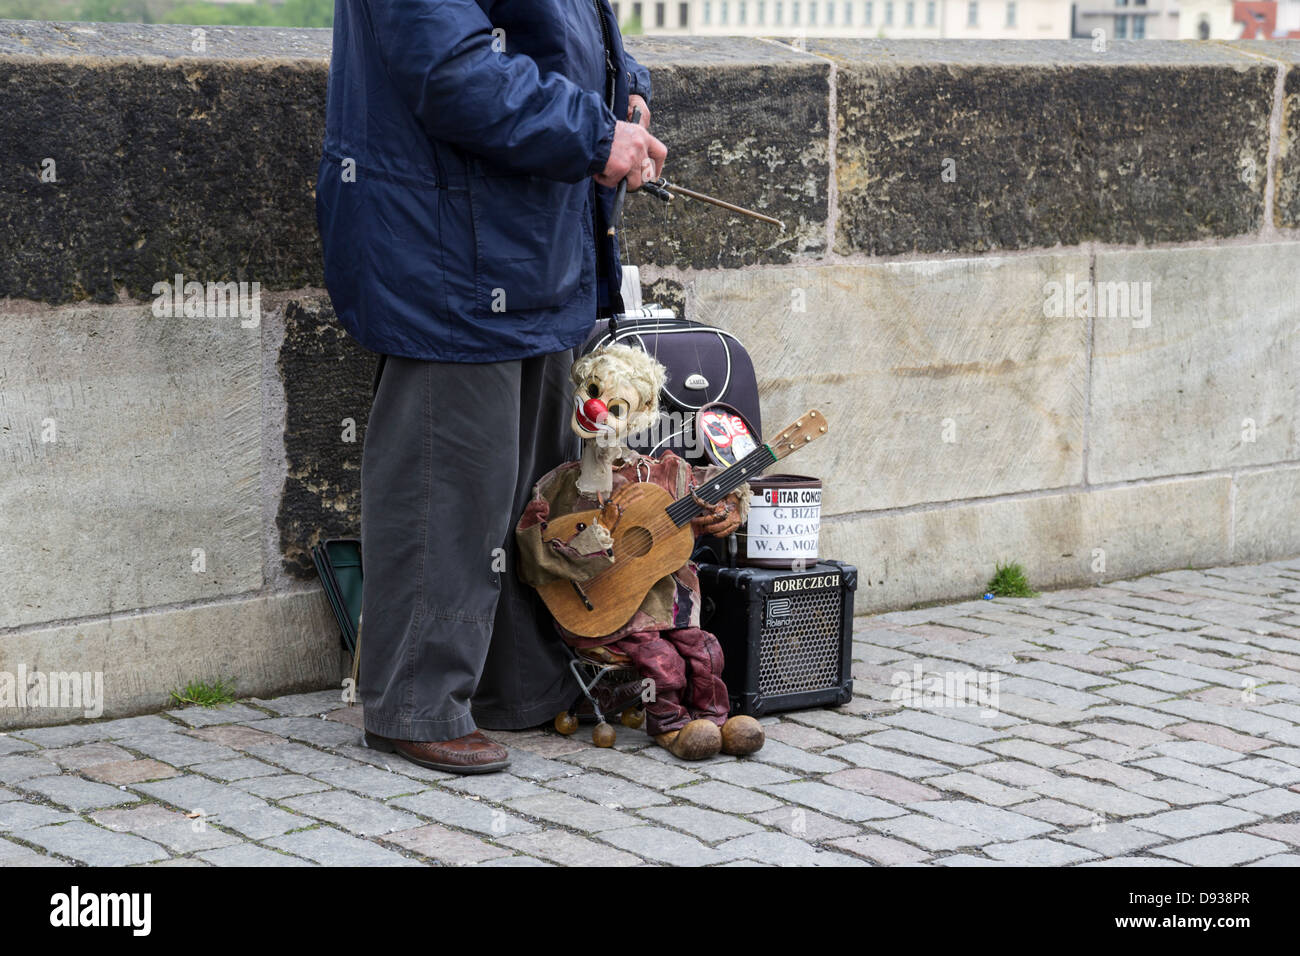 Puppeteer on the Charles bridge in Prague, Czech Republic - Stock Image